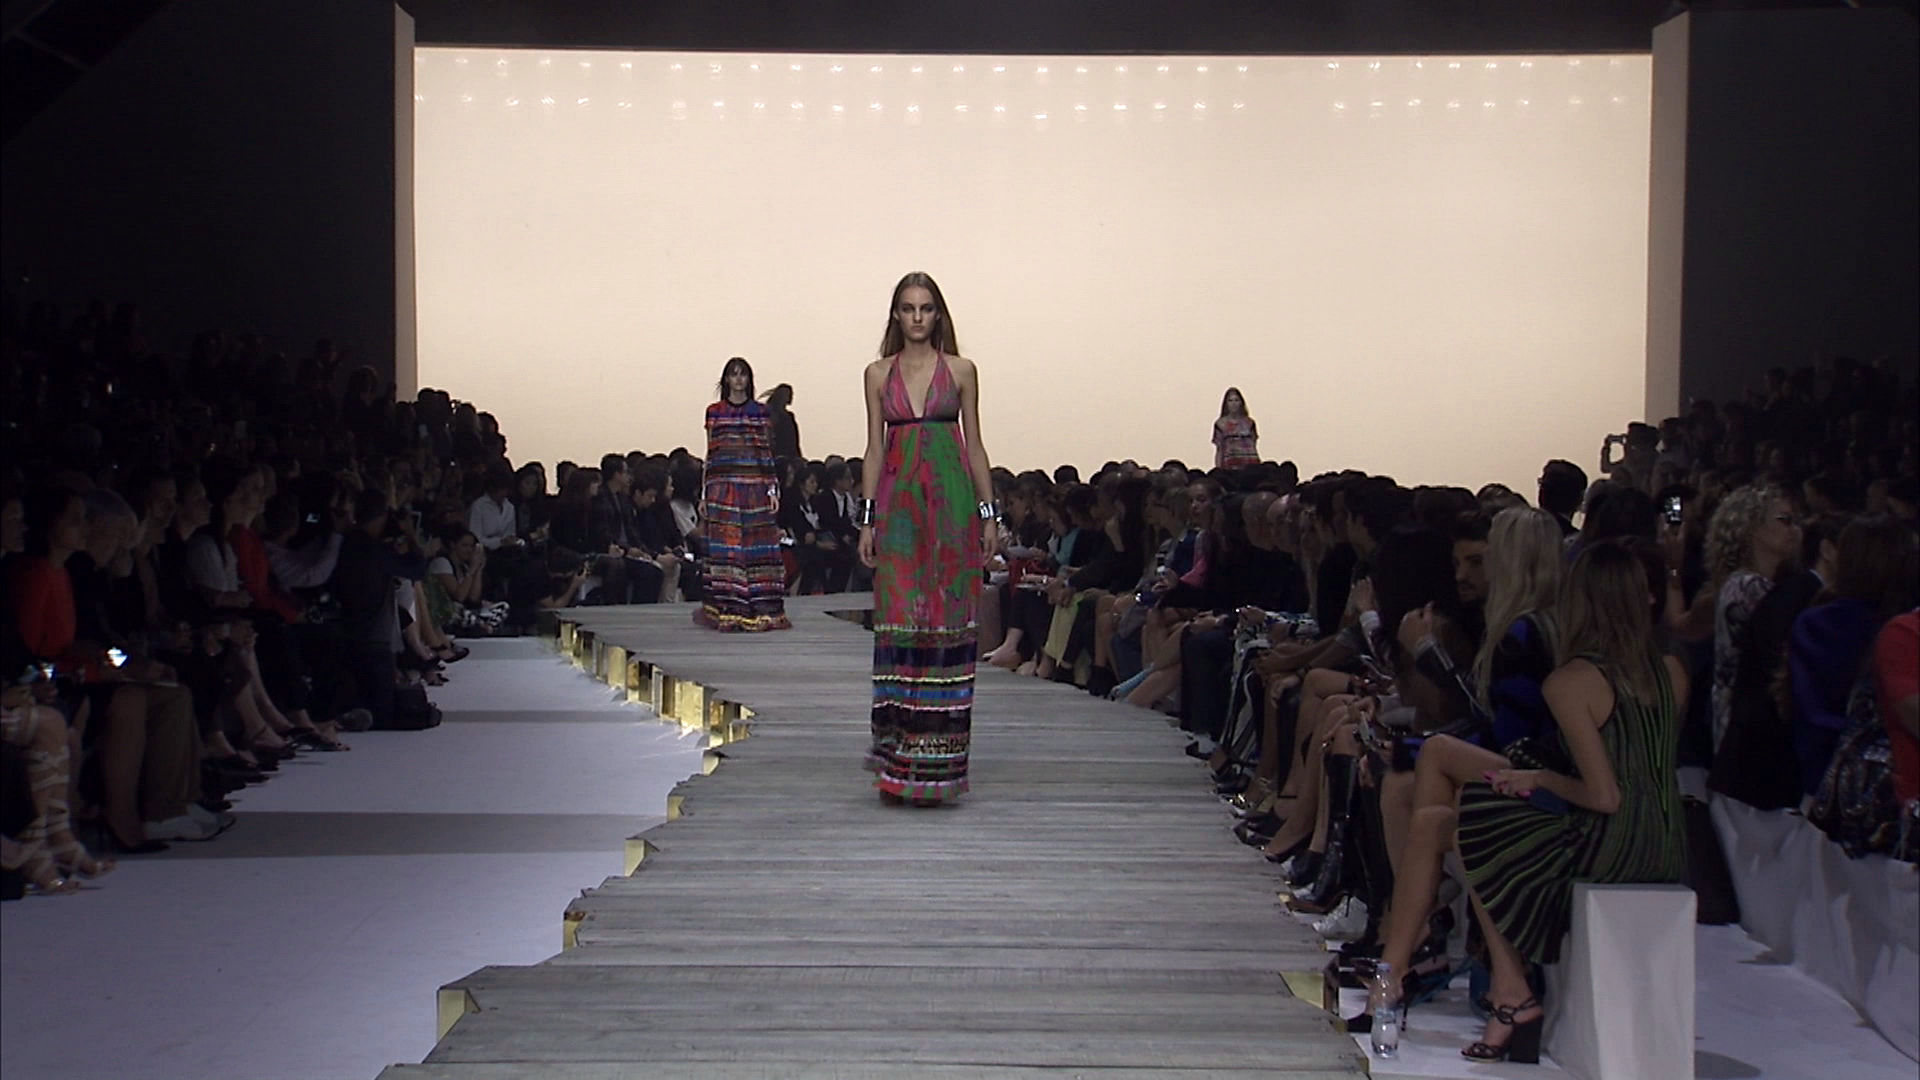 Roberto Cavalli Spring Summer 2015 Women's Fashion Show - Milan Fashion Week